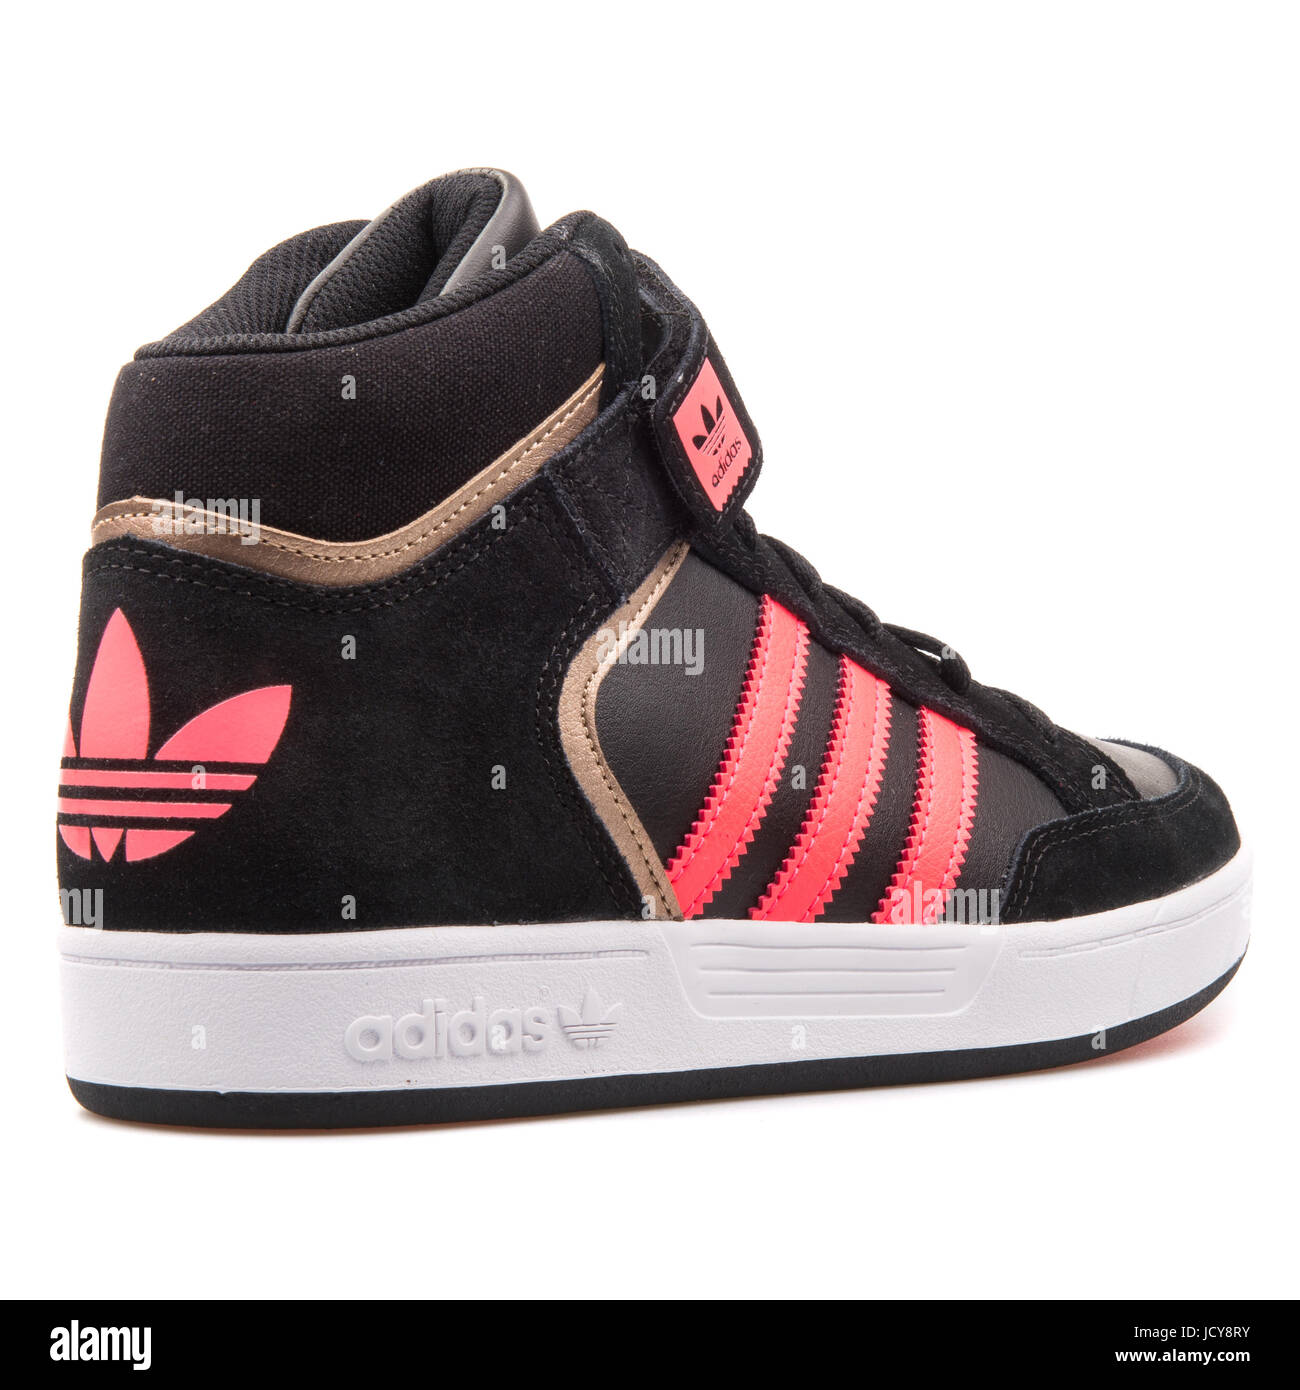 J Stock Mid Black Shoes Sports Photo Youth's Varial Adidas Q16696 CdoBex